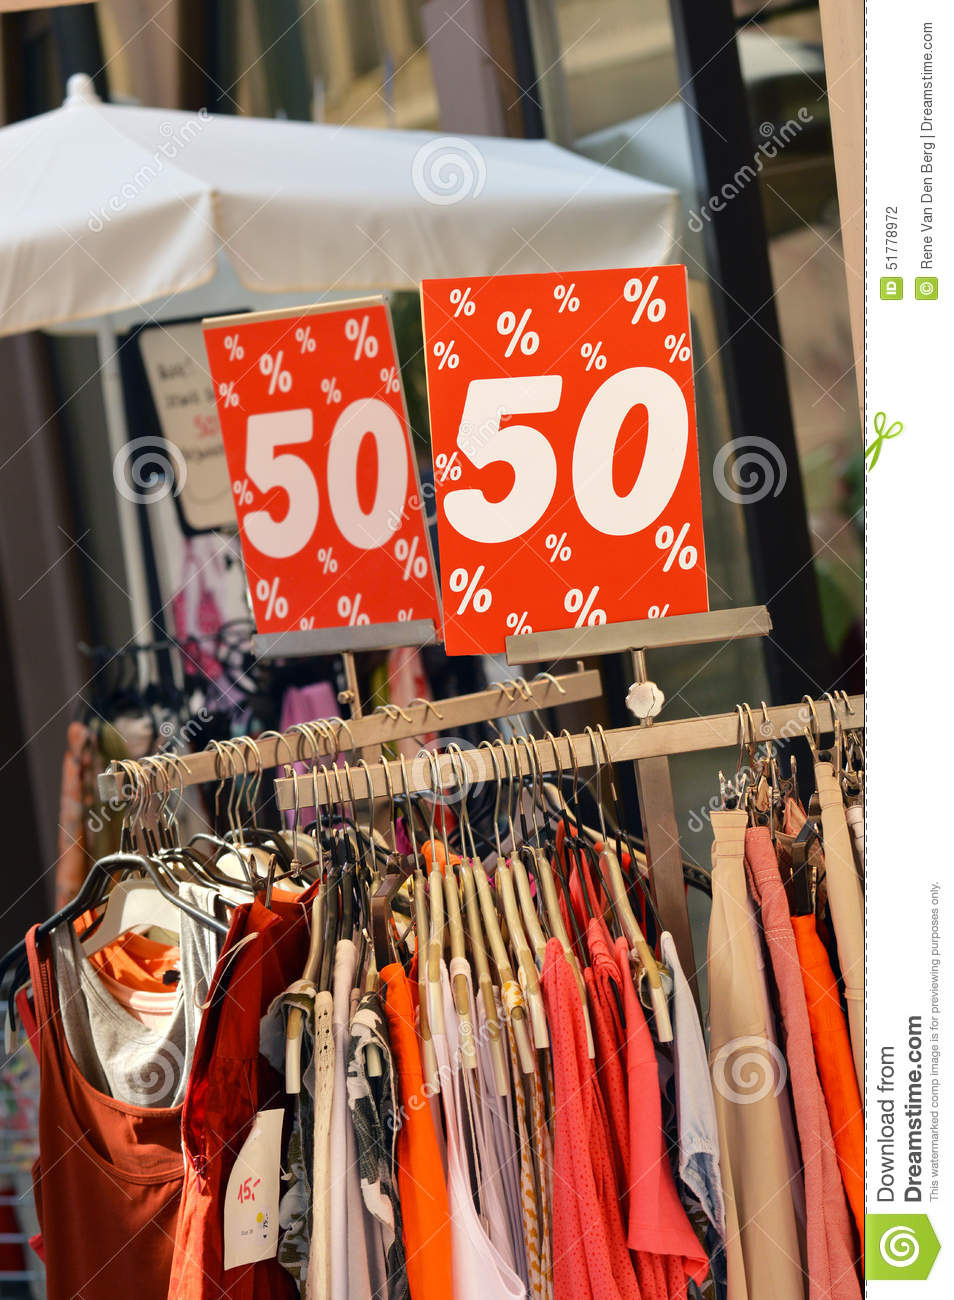 Clothing Shop Online Coupon Codes | Verified Deals & Discounts.